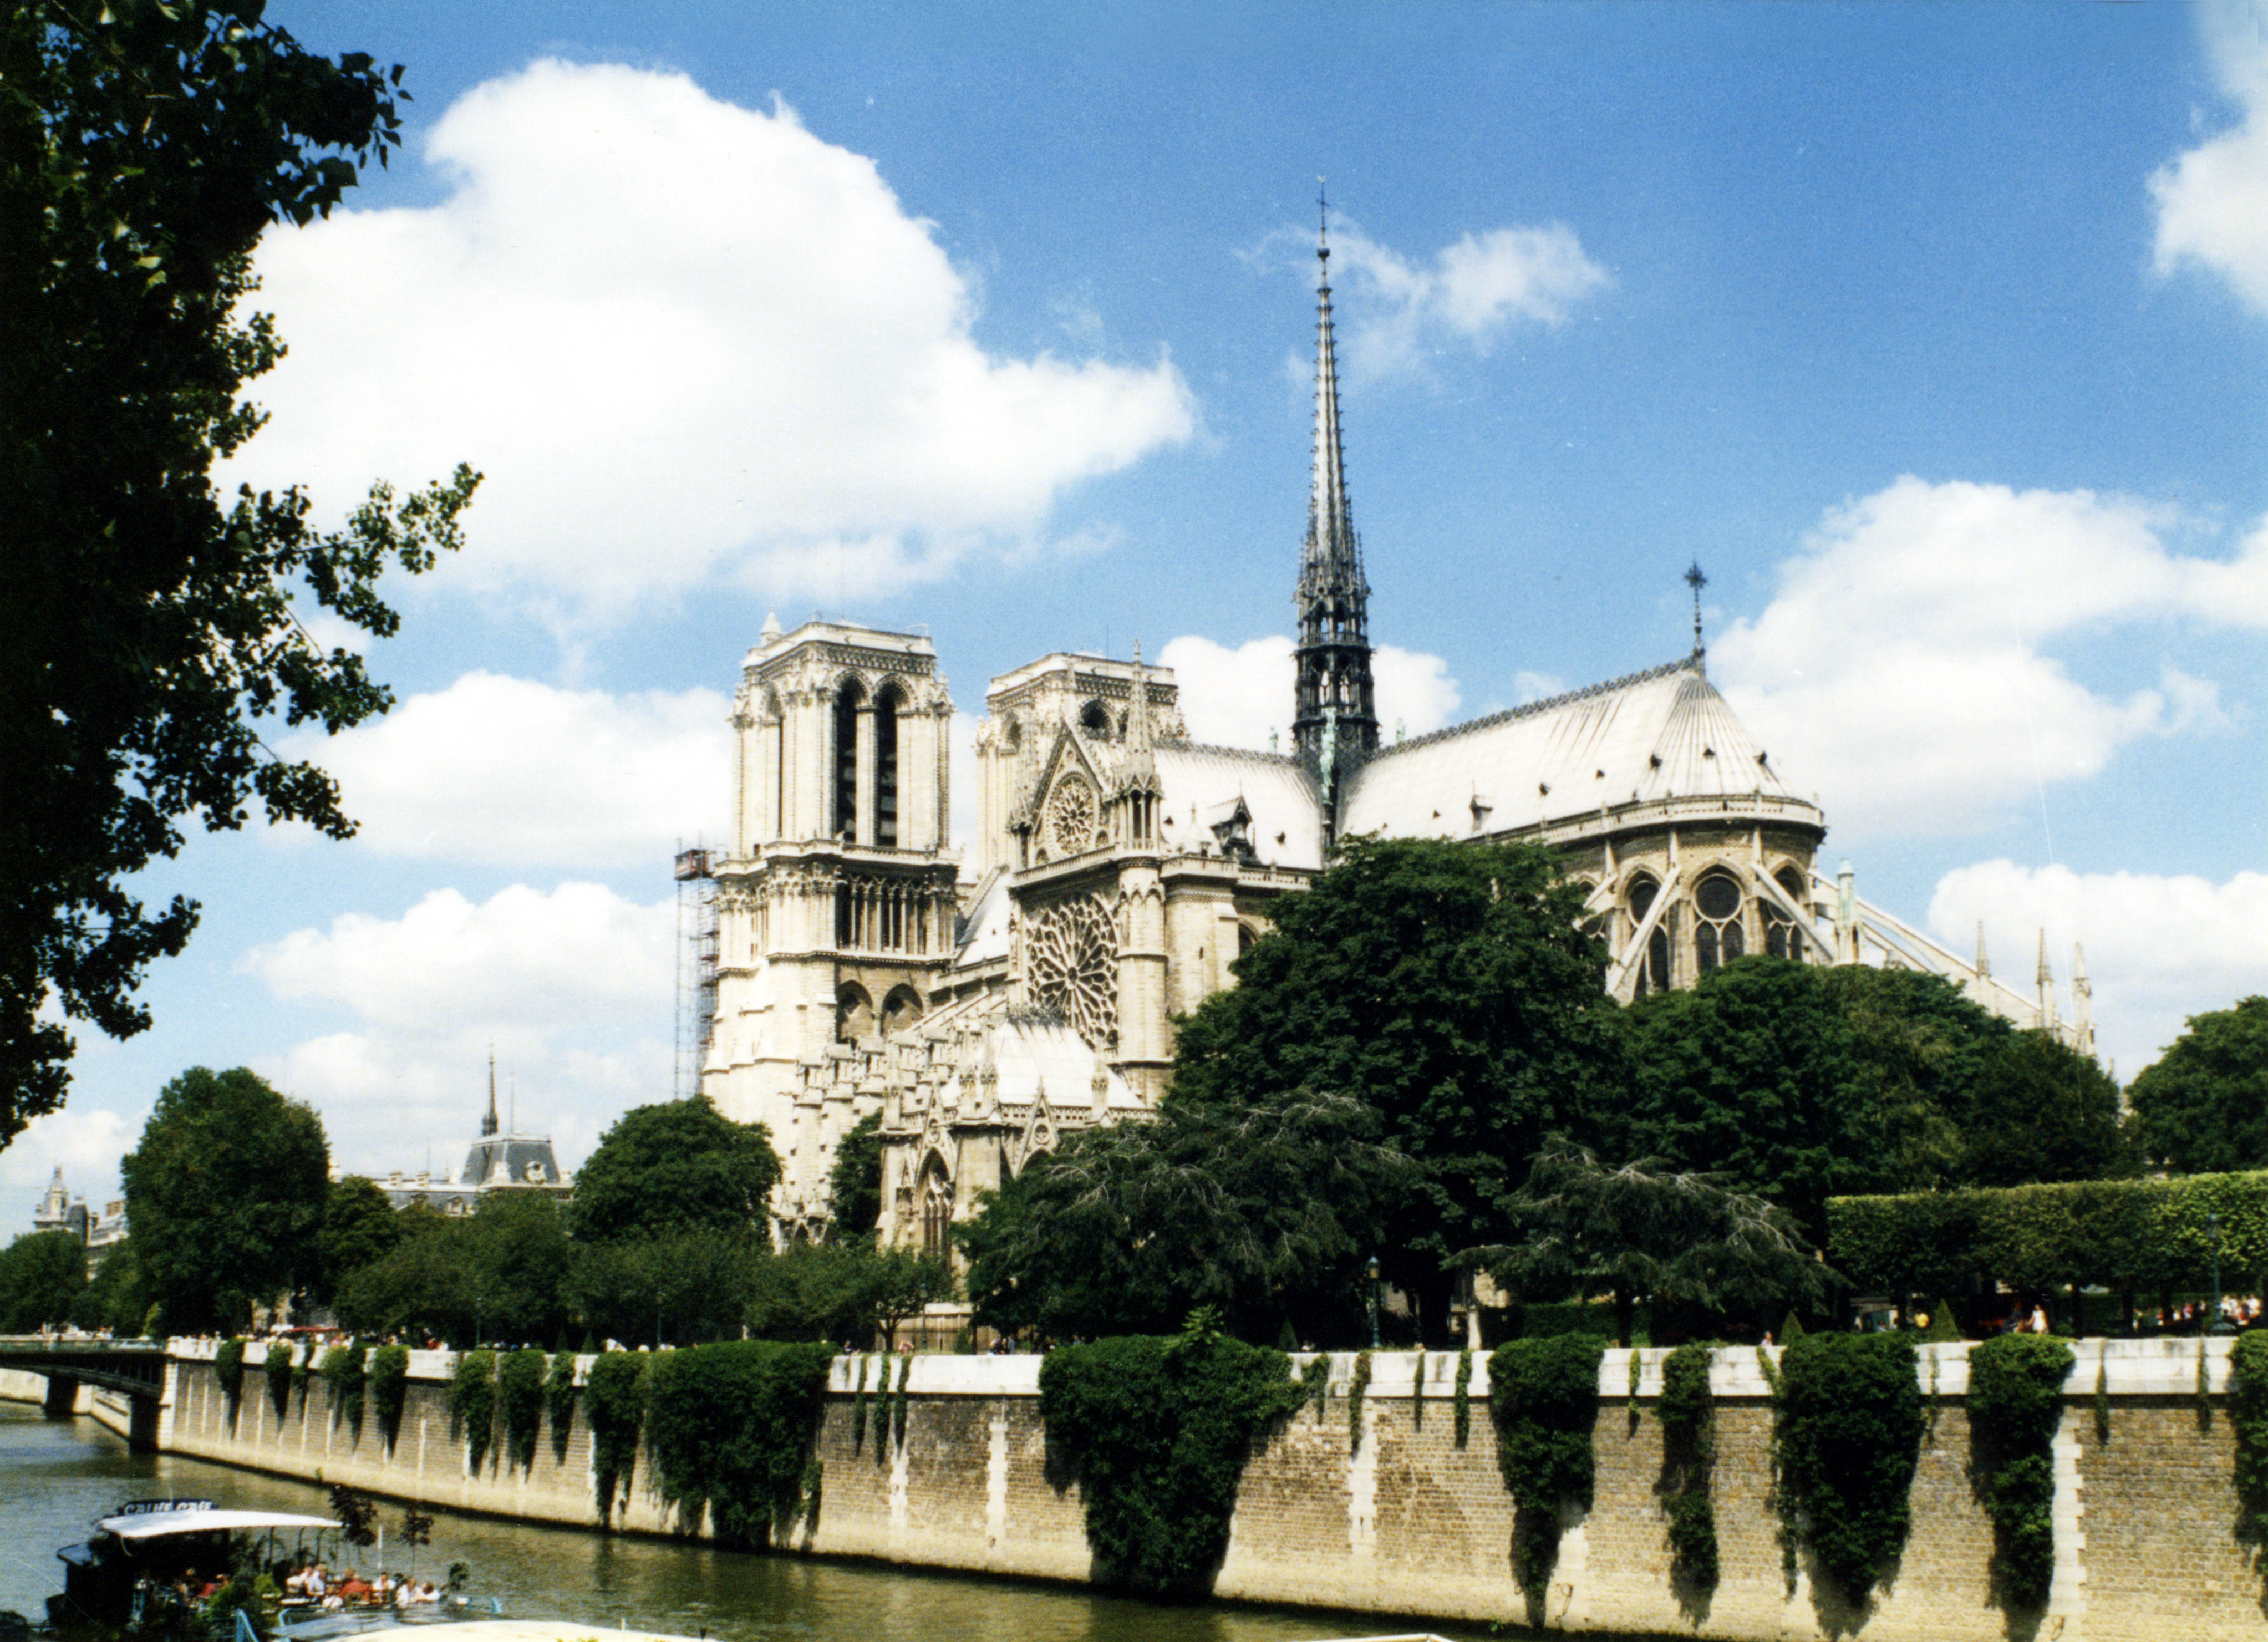 An experience on a tour to notre dame in paris france